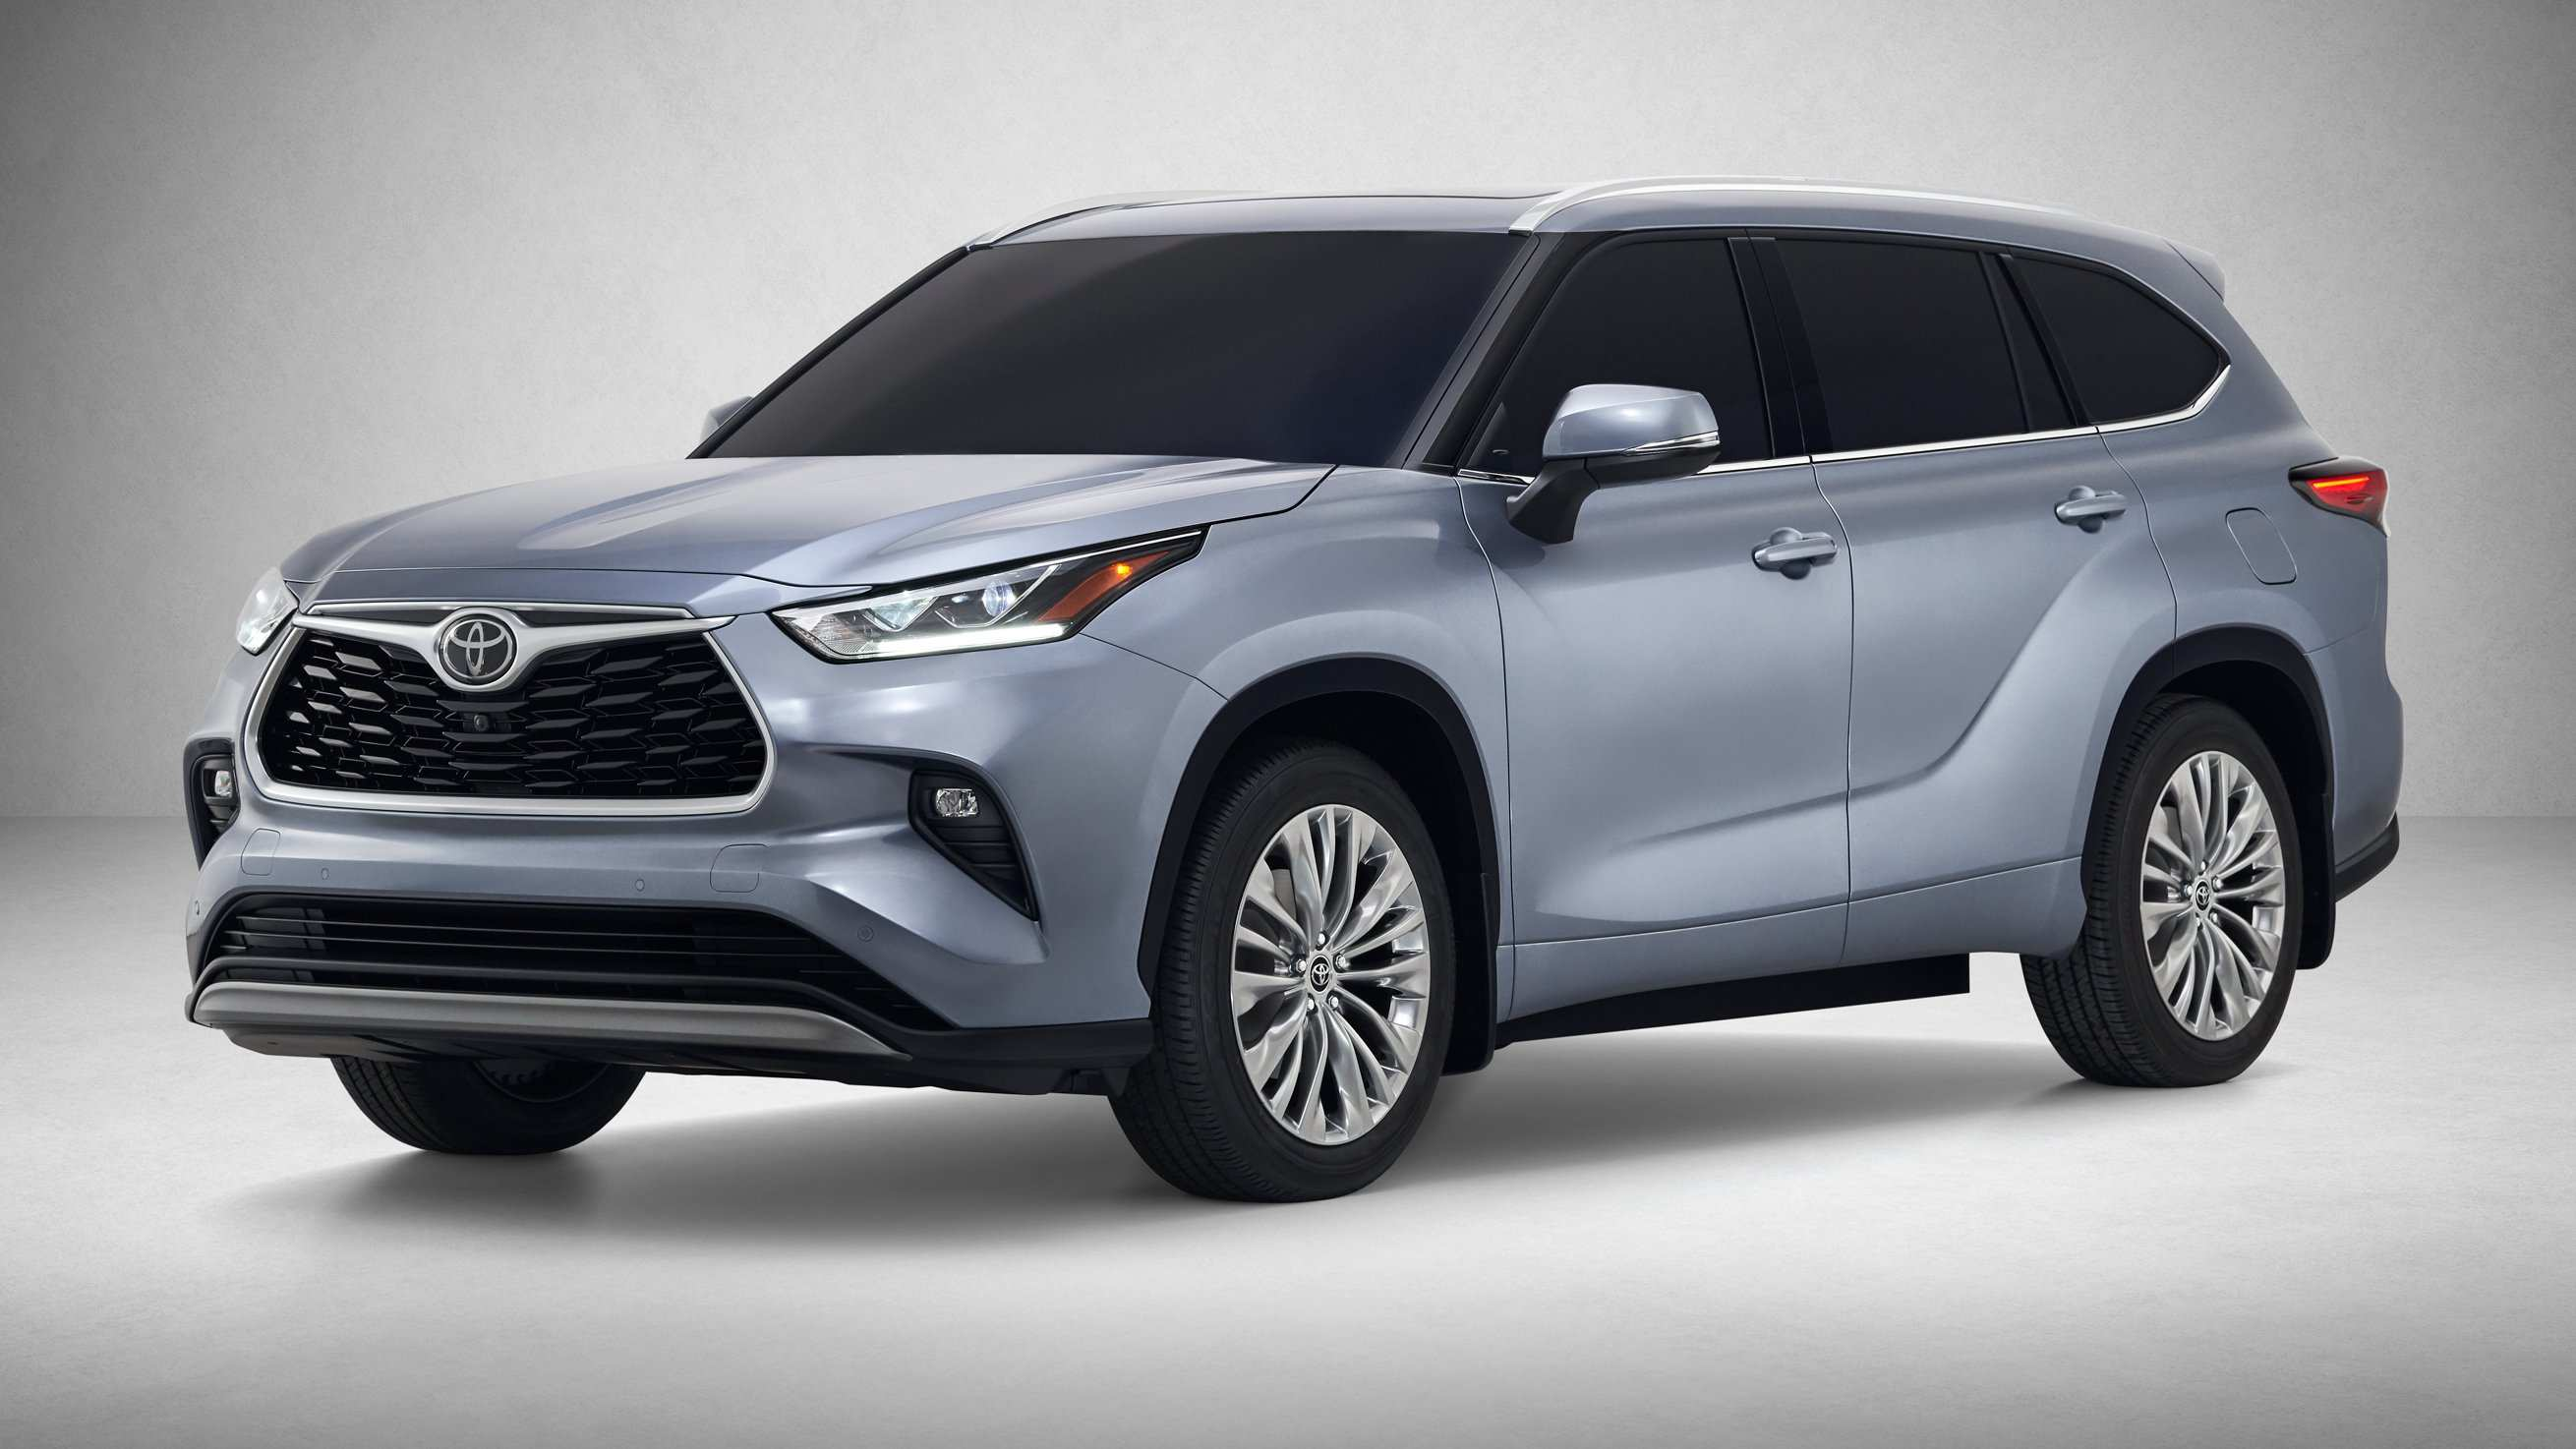 76 All New Toyota Kluger 2020 Australia Release Date Reviews with Toyota Kluger 2020 Australia Release Date